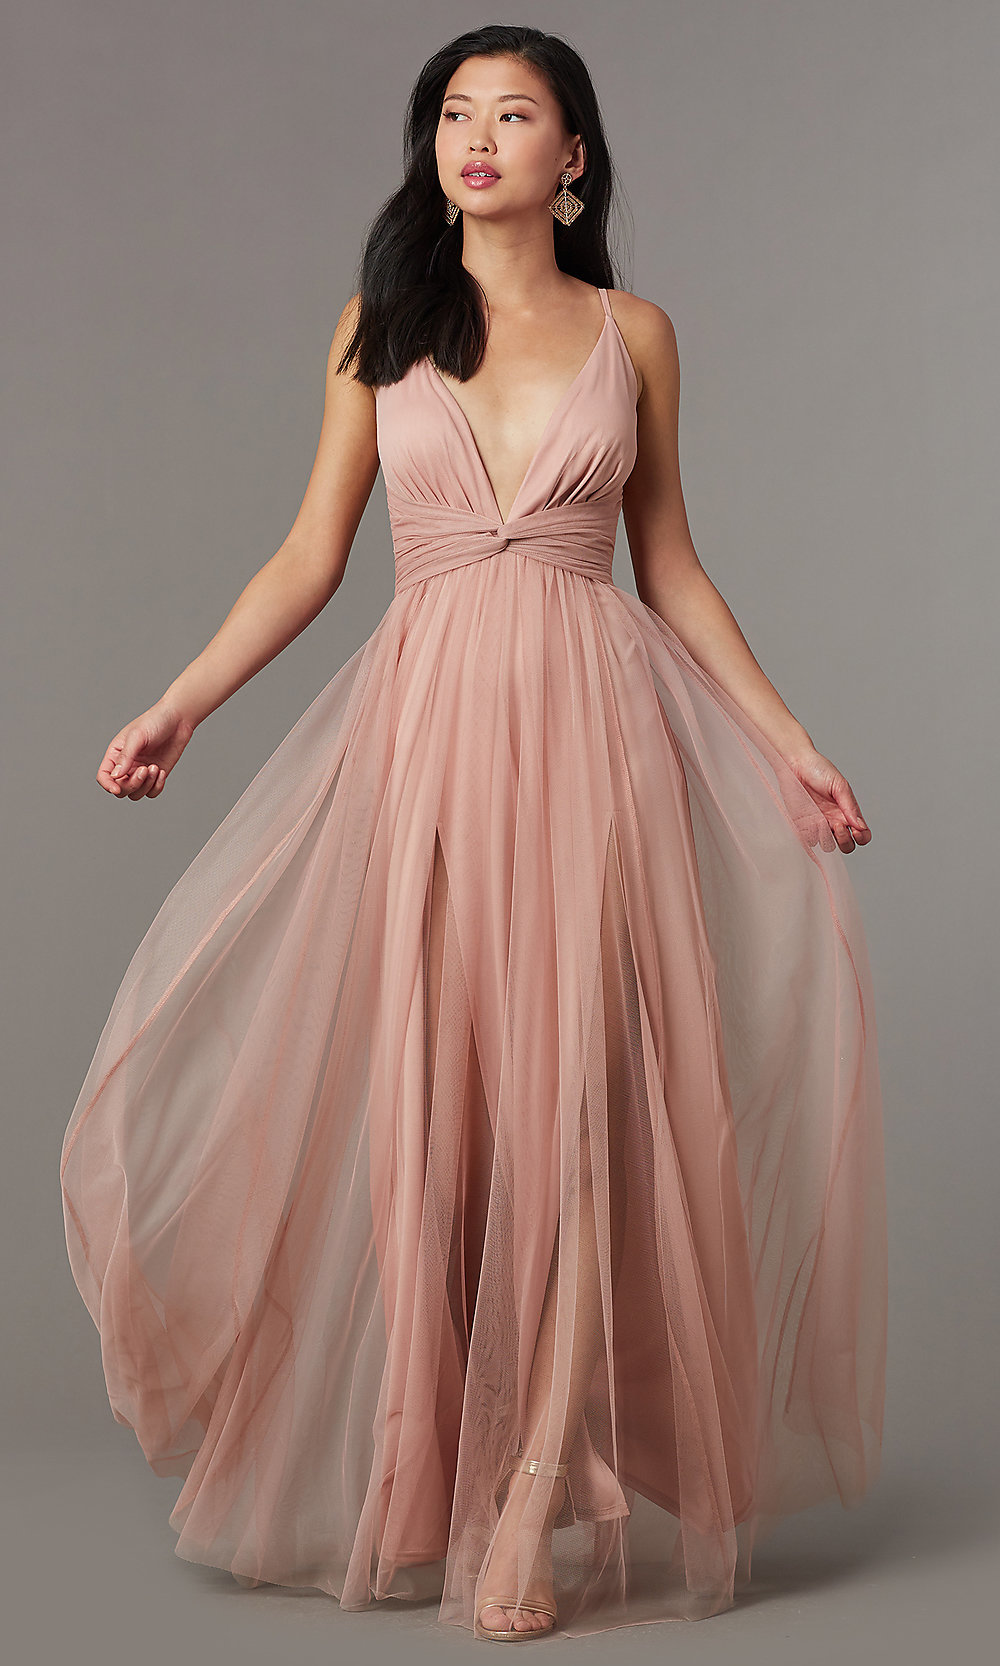 a3e5db614b69e Knotted-Waist Sexy Long Formal Dress in Blush Pink